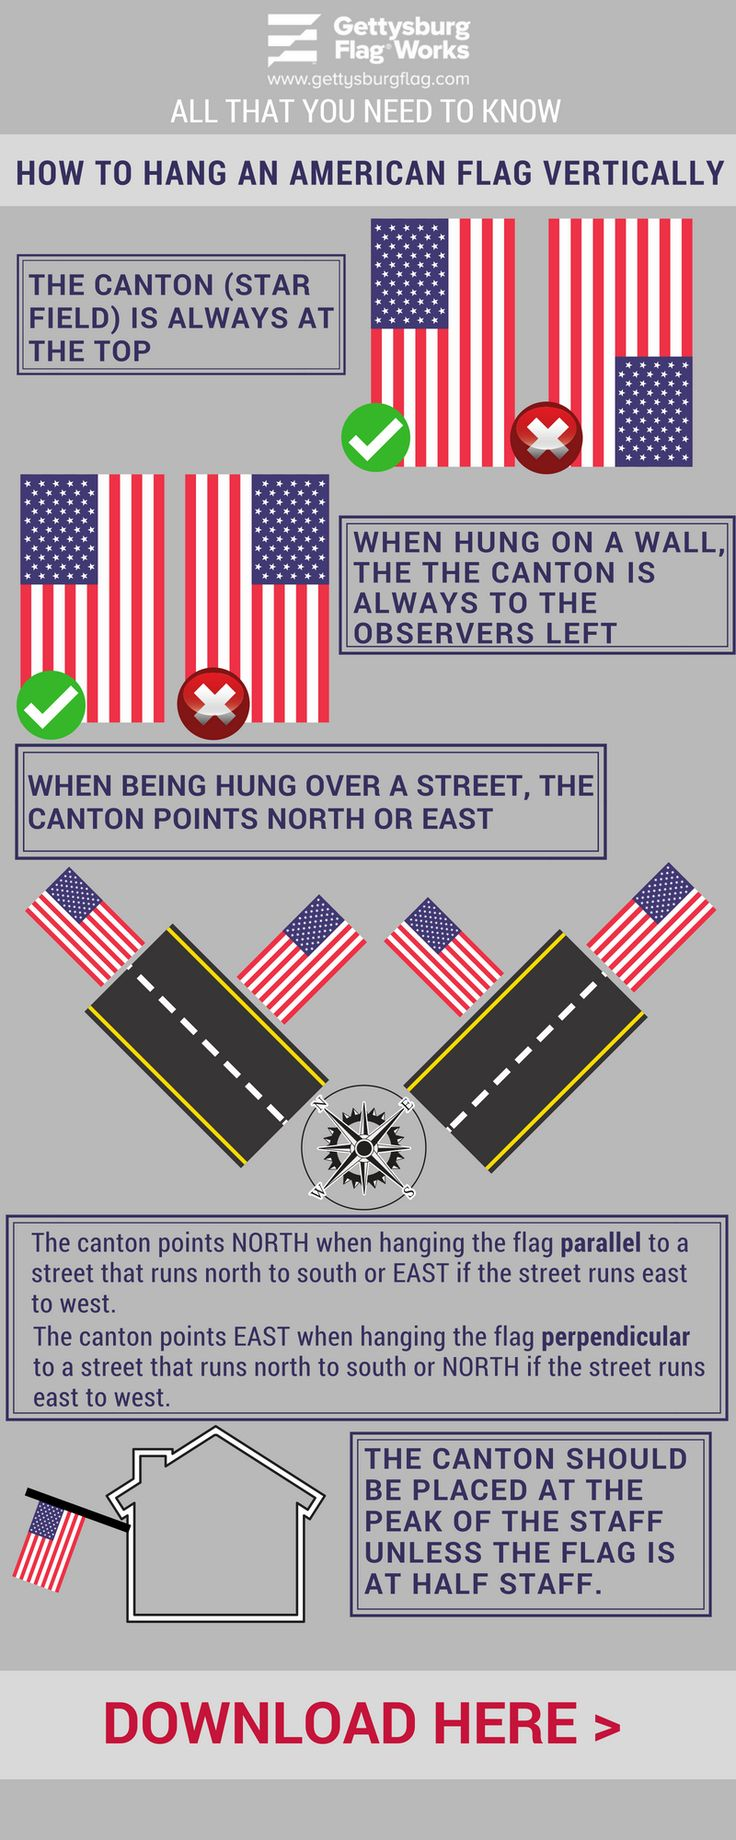 How To Display The American Flag Outdoors In 2020 Displaying The American Flag American Flag Etiquette American Flag